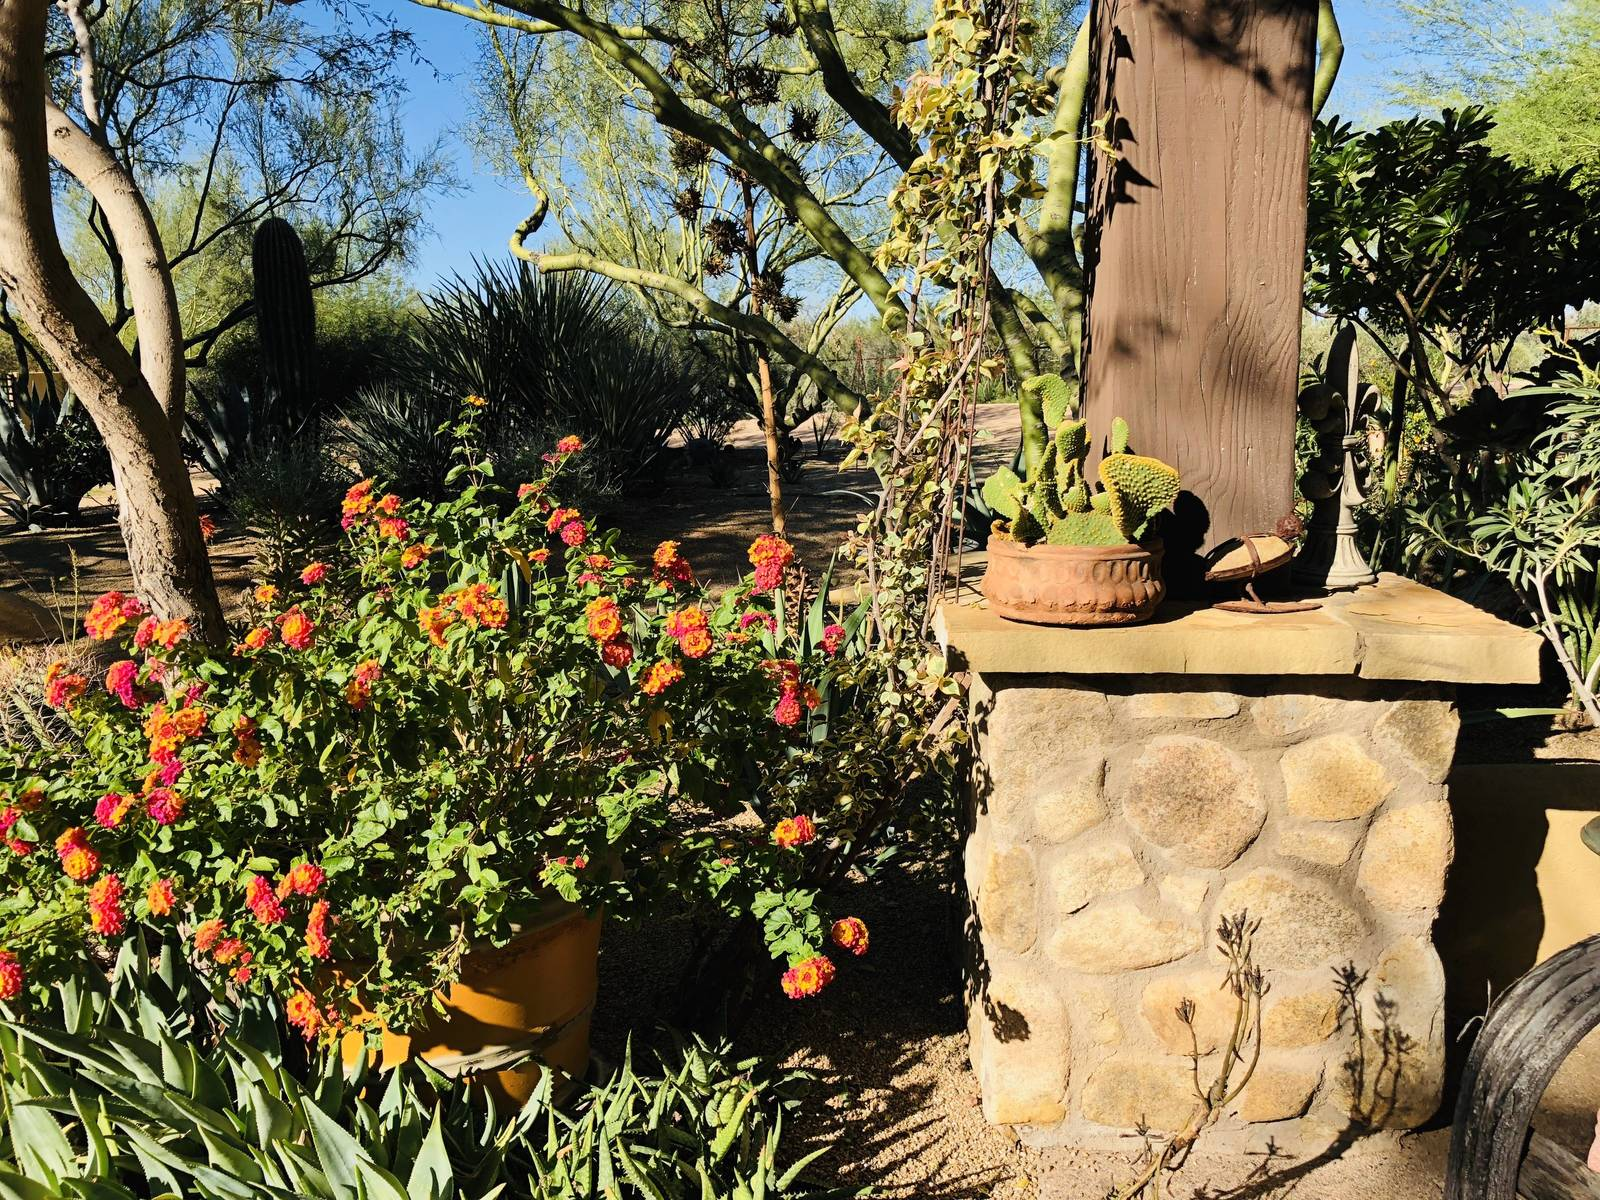 The incredible landscaping at Stonewall Farm